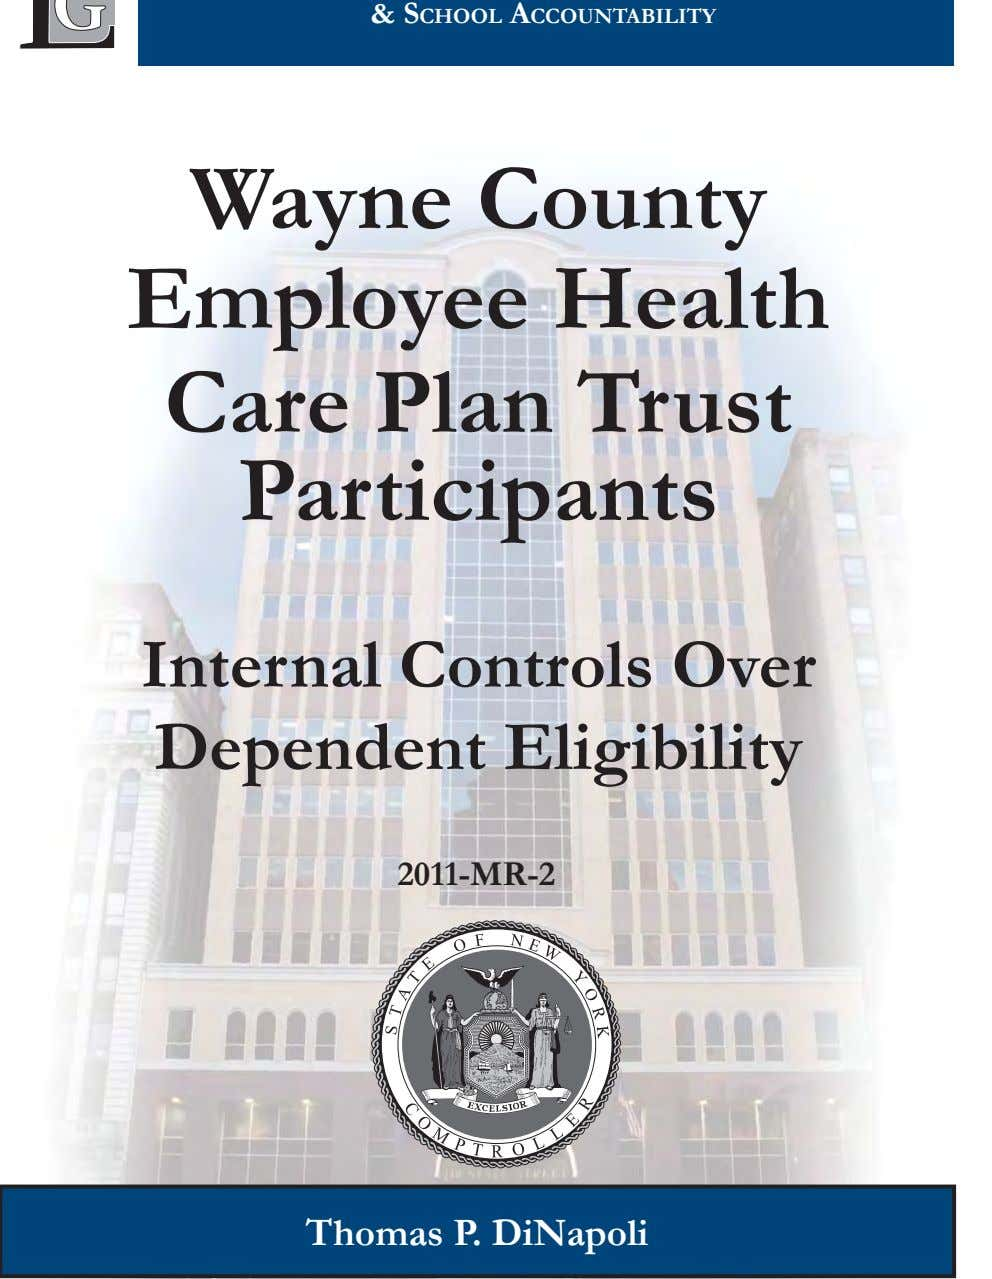 Wayne County Employee Health Care Plan Trust Participants Internal Controls Over Dependent Eligibility 2011-MR-2